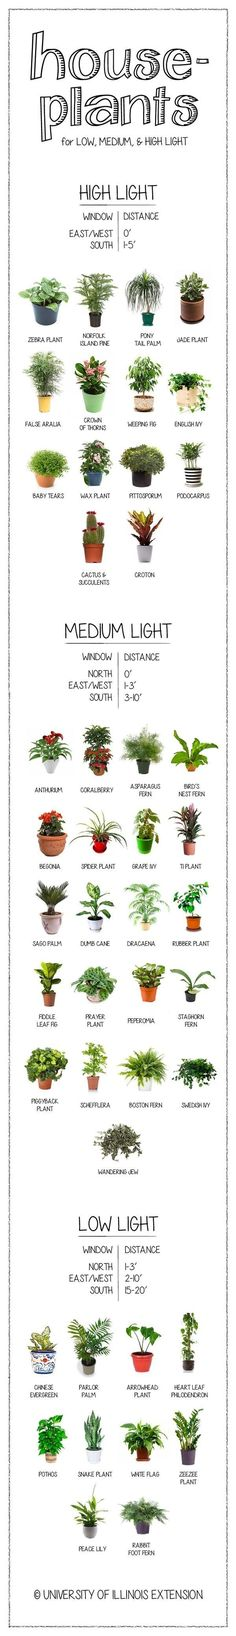 I need plants both outdoors and indoors.